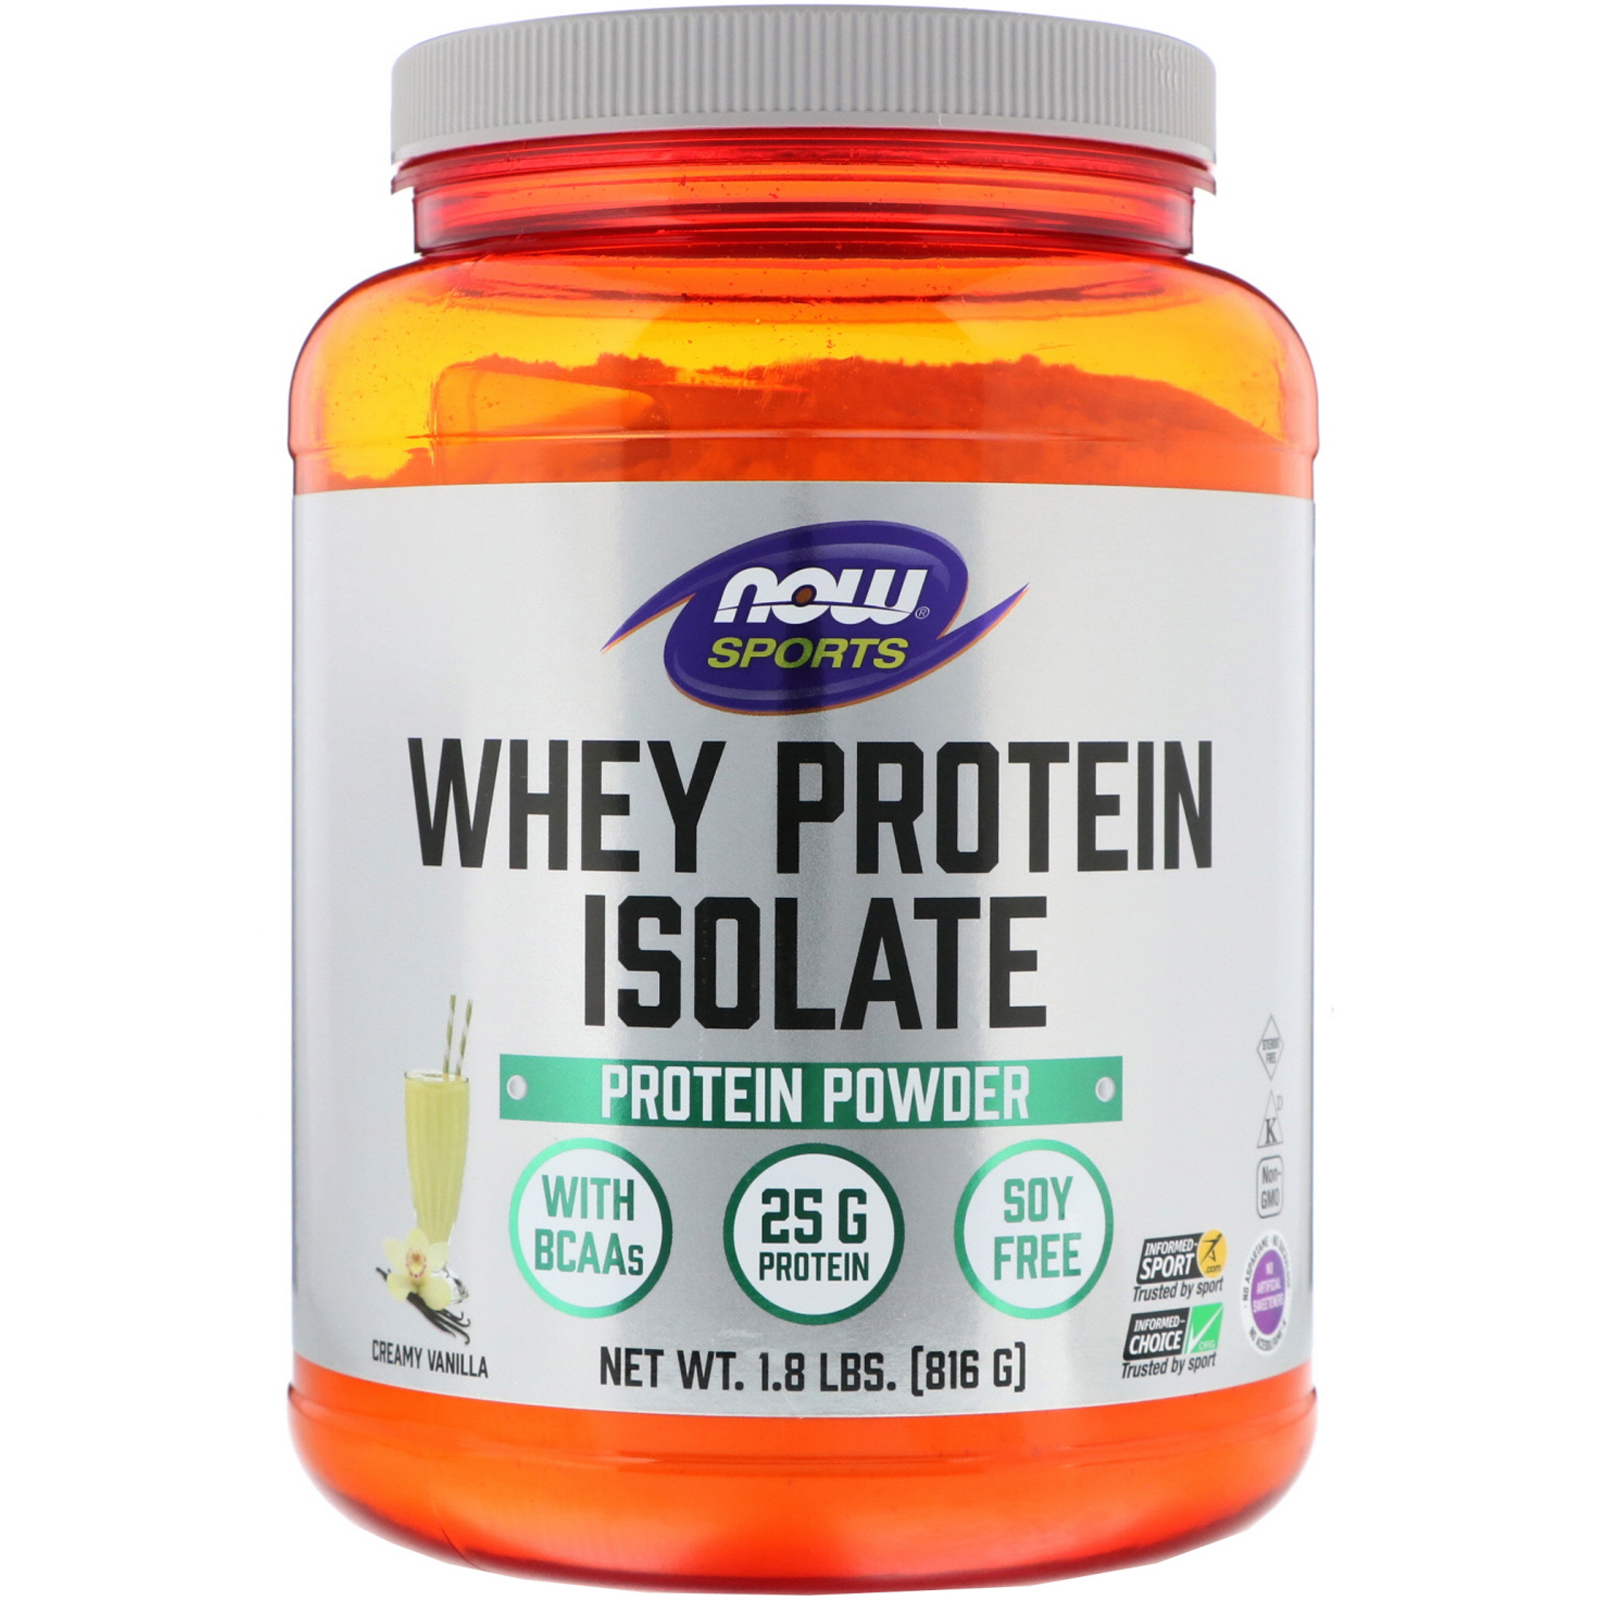 dd8a36c4aab Now Foods, Sports, Whey Protein Isolate, Creamy Vanilla, 1.8 lbs (816 g)